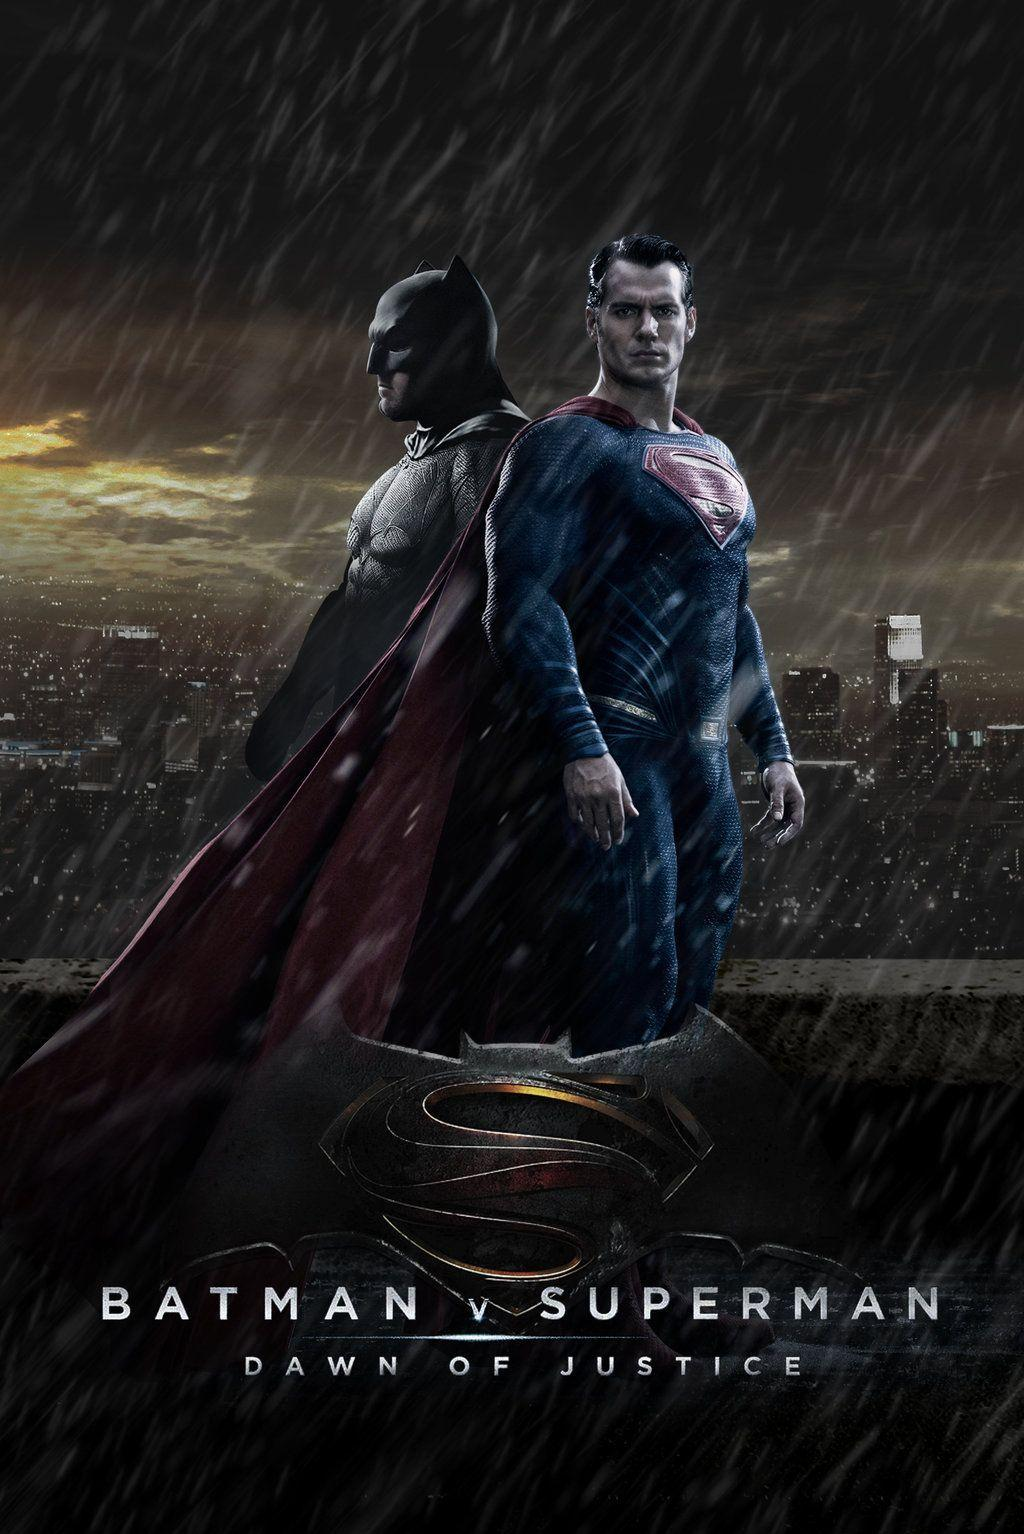 Batman Vs Superman Online Anschauen